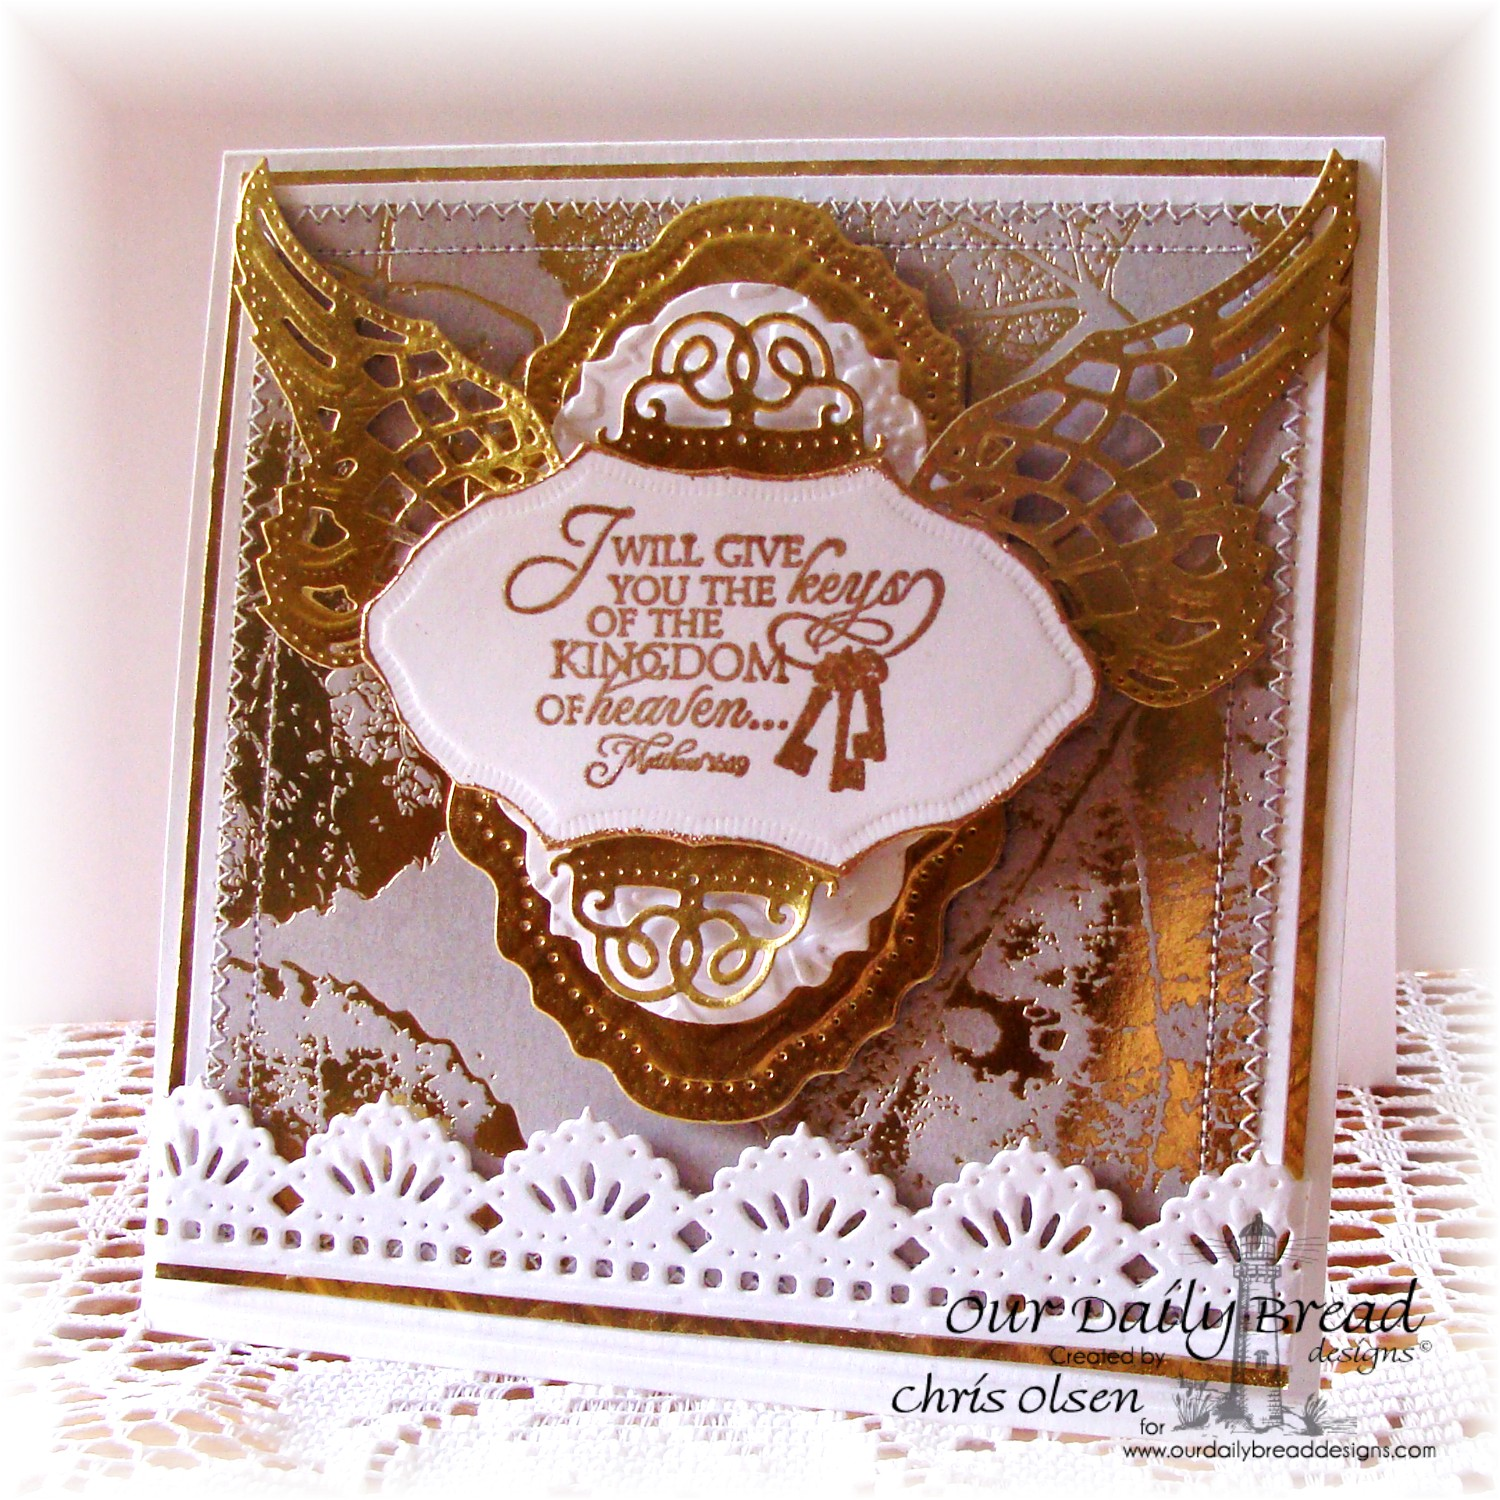 Stamps - Our Daily Bread Designs Key to Heaven, ODBD Custom Beautiful Borders Dies, ODBD Custom Angel Wings Dies, ODBD Custom Vintage Flourish Pattern Die, ODBD Custom Vintage Labels Die, ODBD Custom Angel Wings Die